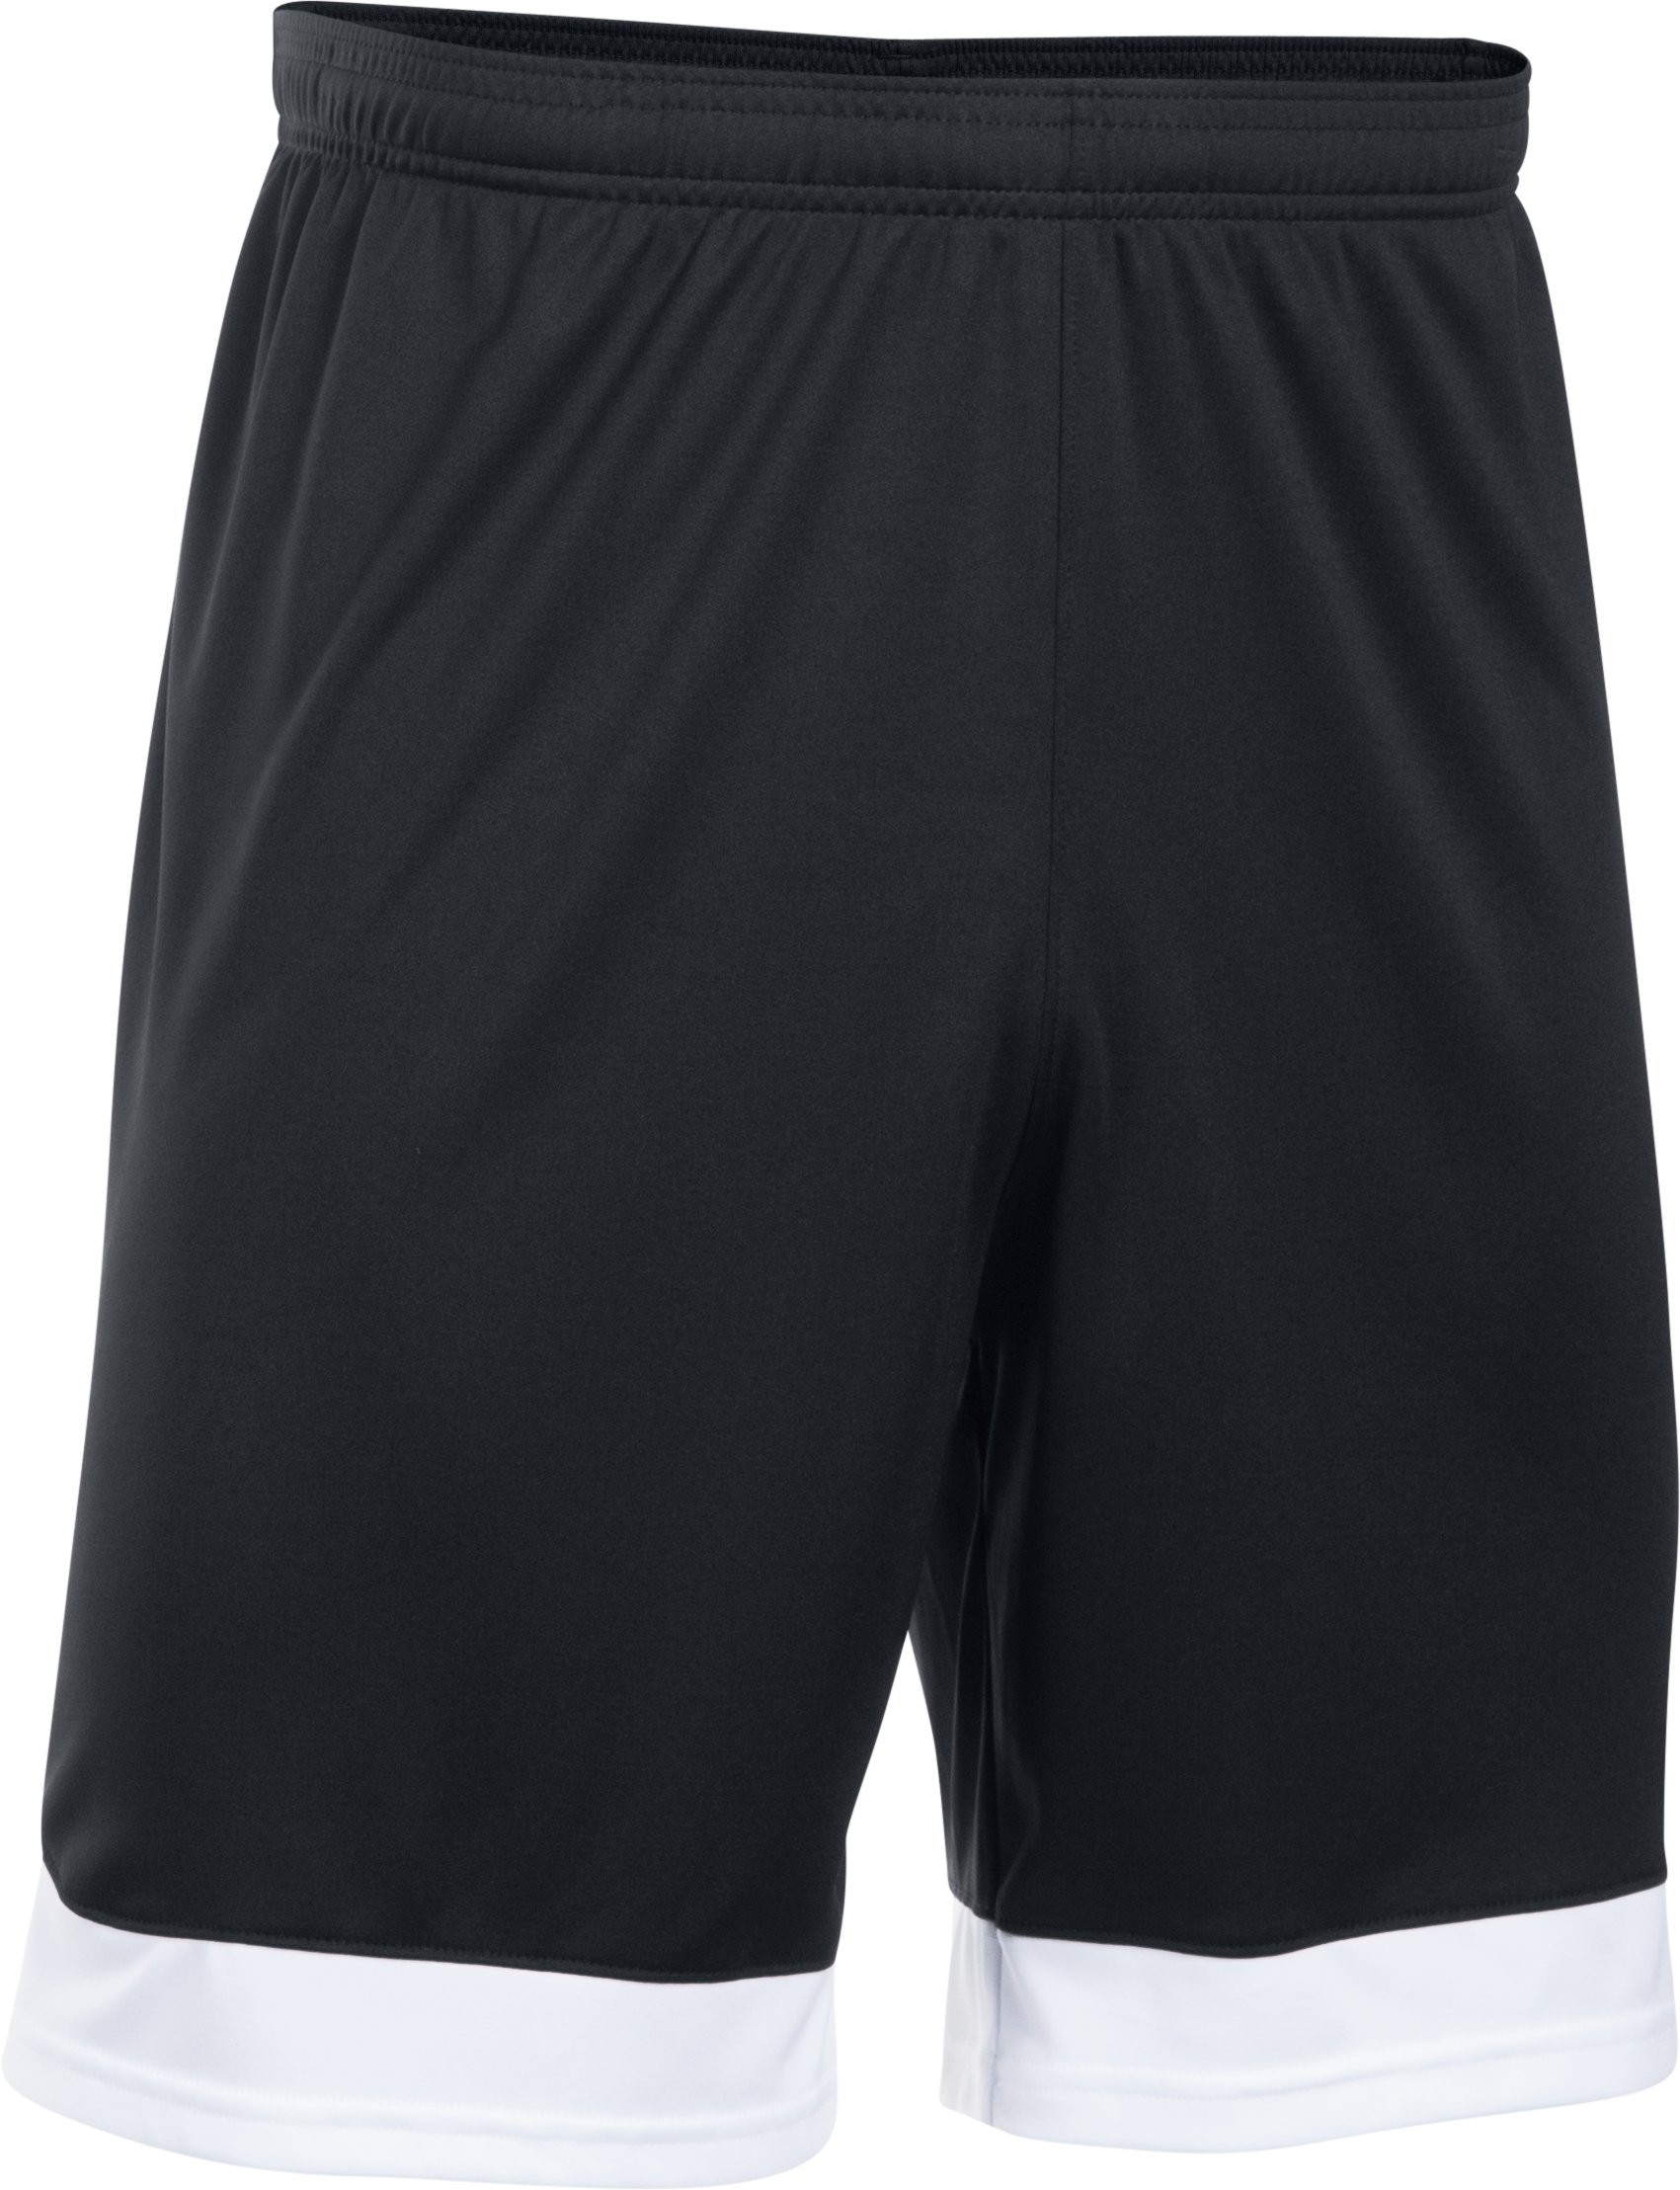 Men's UA Maquina Shorts, Black , undefined